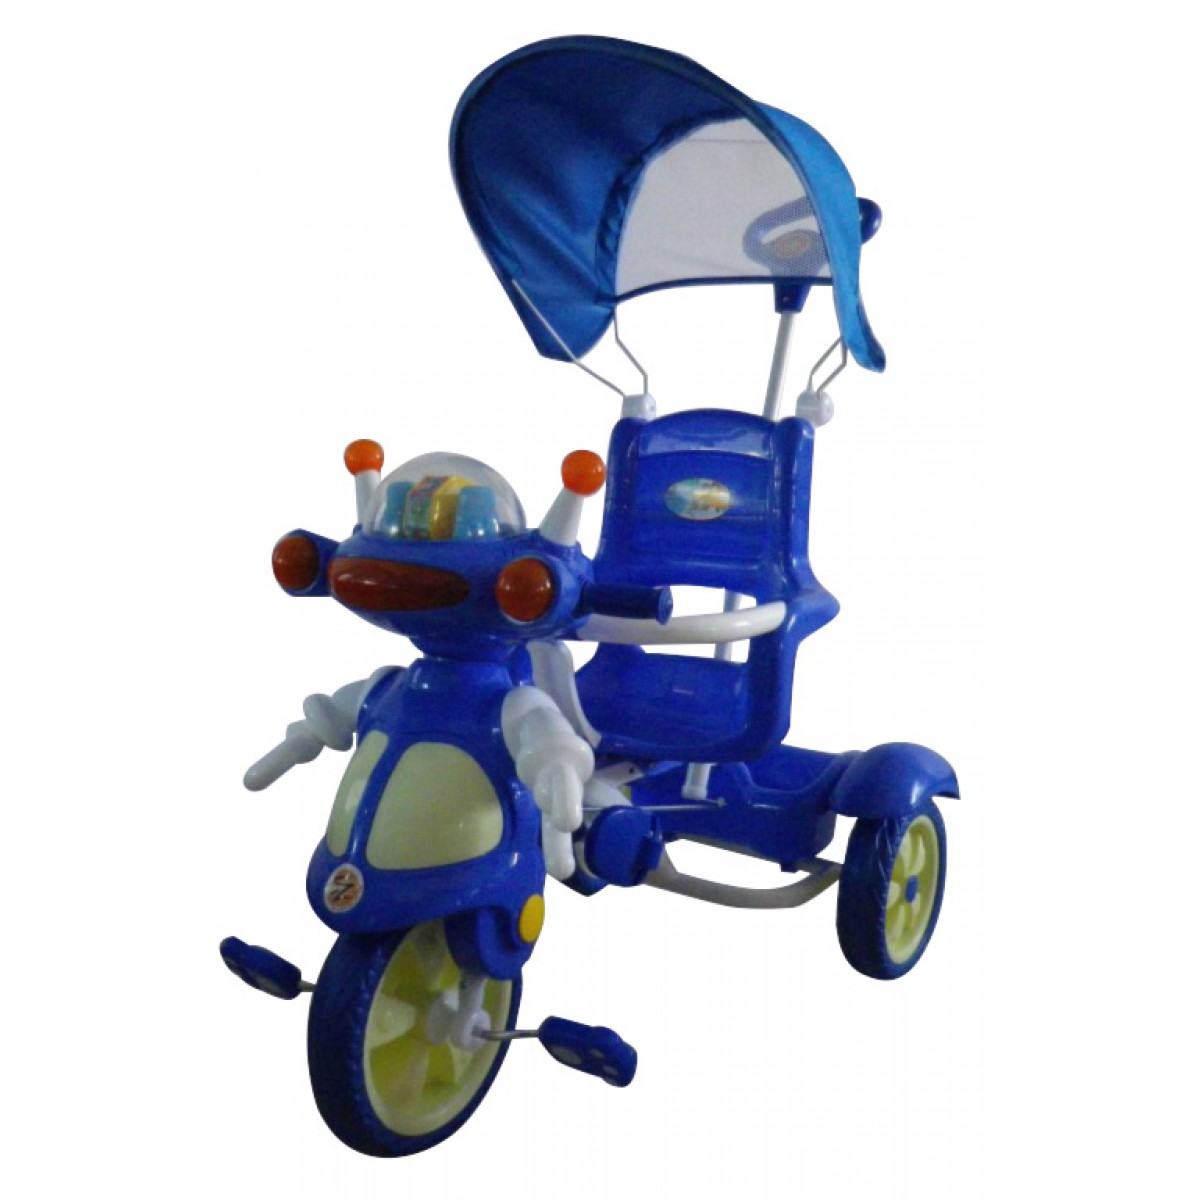 EZ Playmates Deluxe Robot Tricycle (2016)